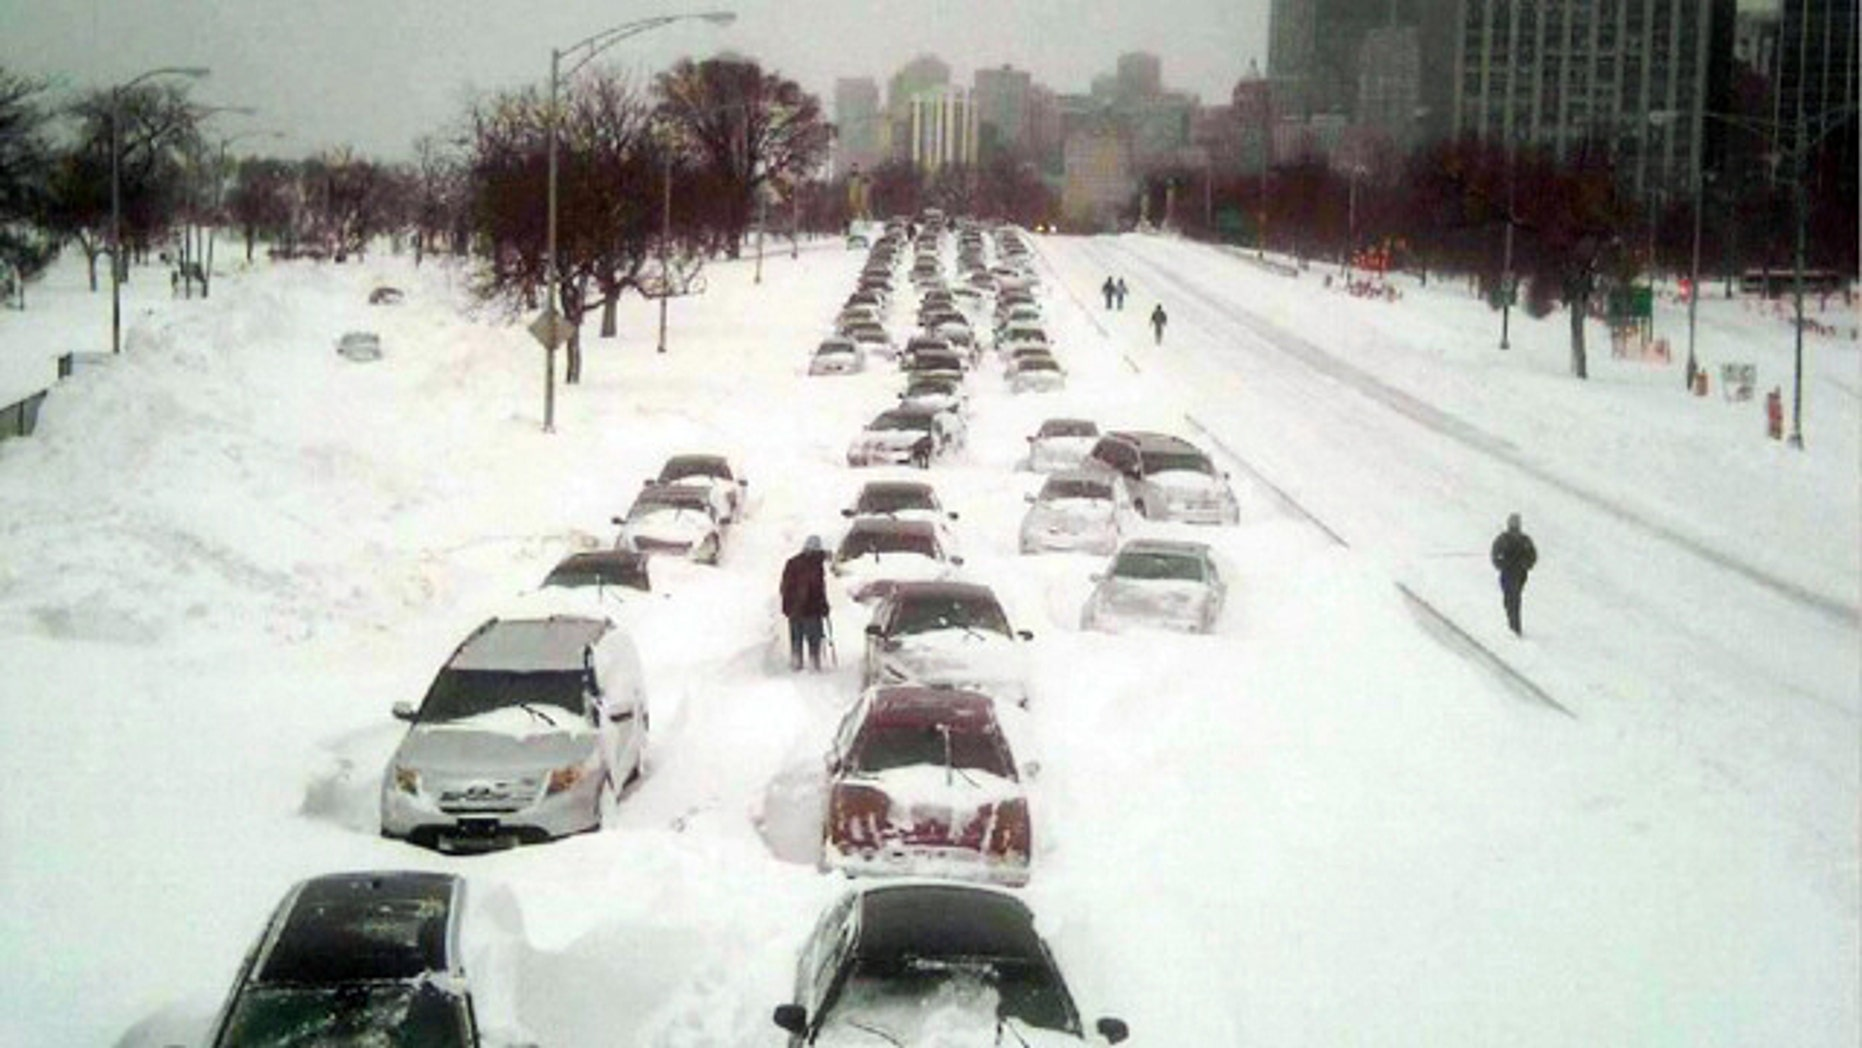 Feb. 2: The massive storm dumped 20.2 inches of snow on Chicago, making it the city's third largest storm on record.